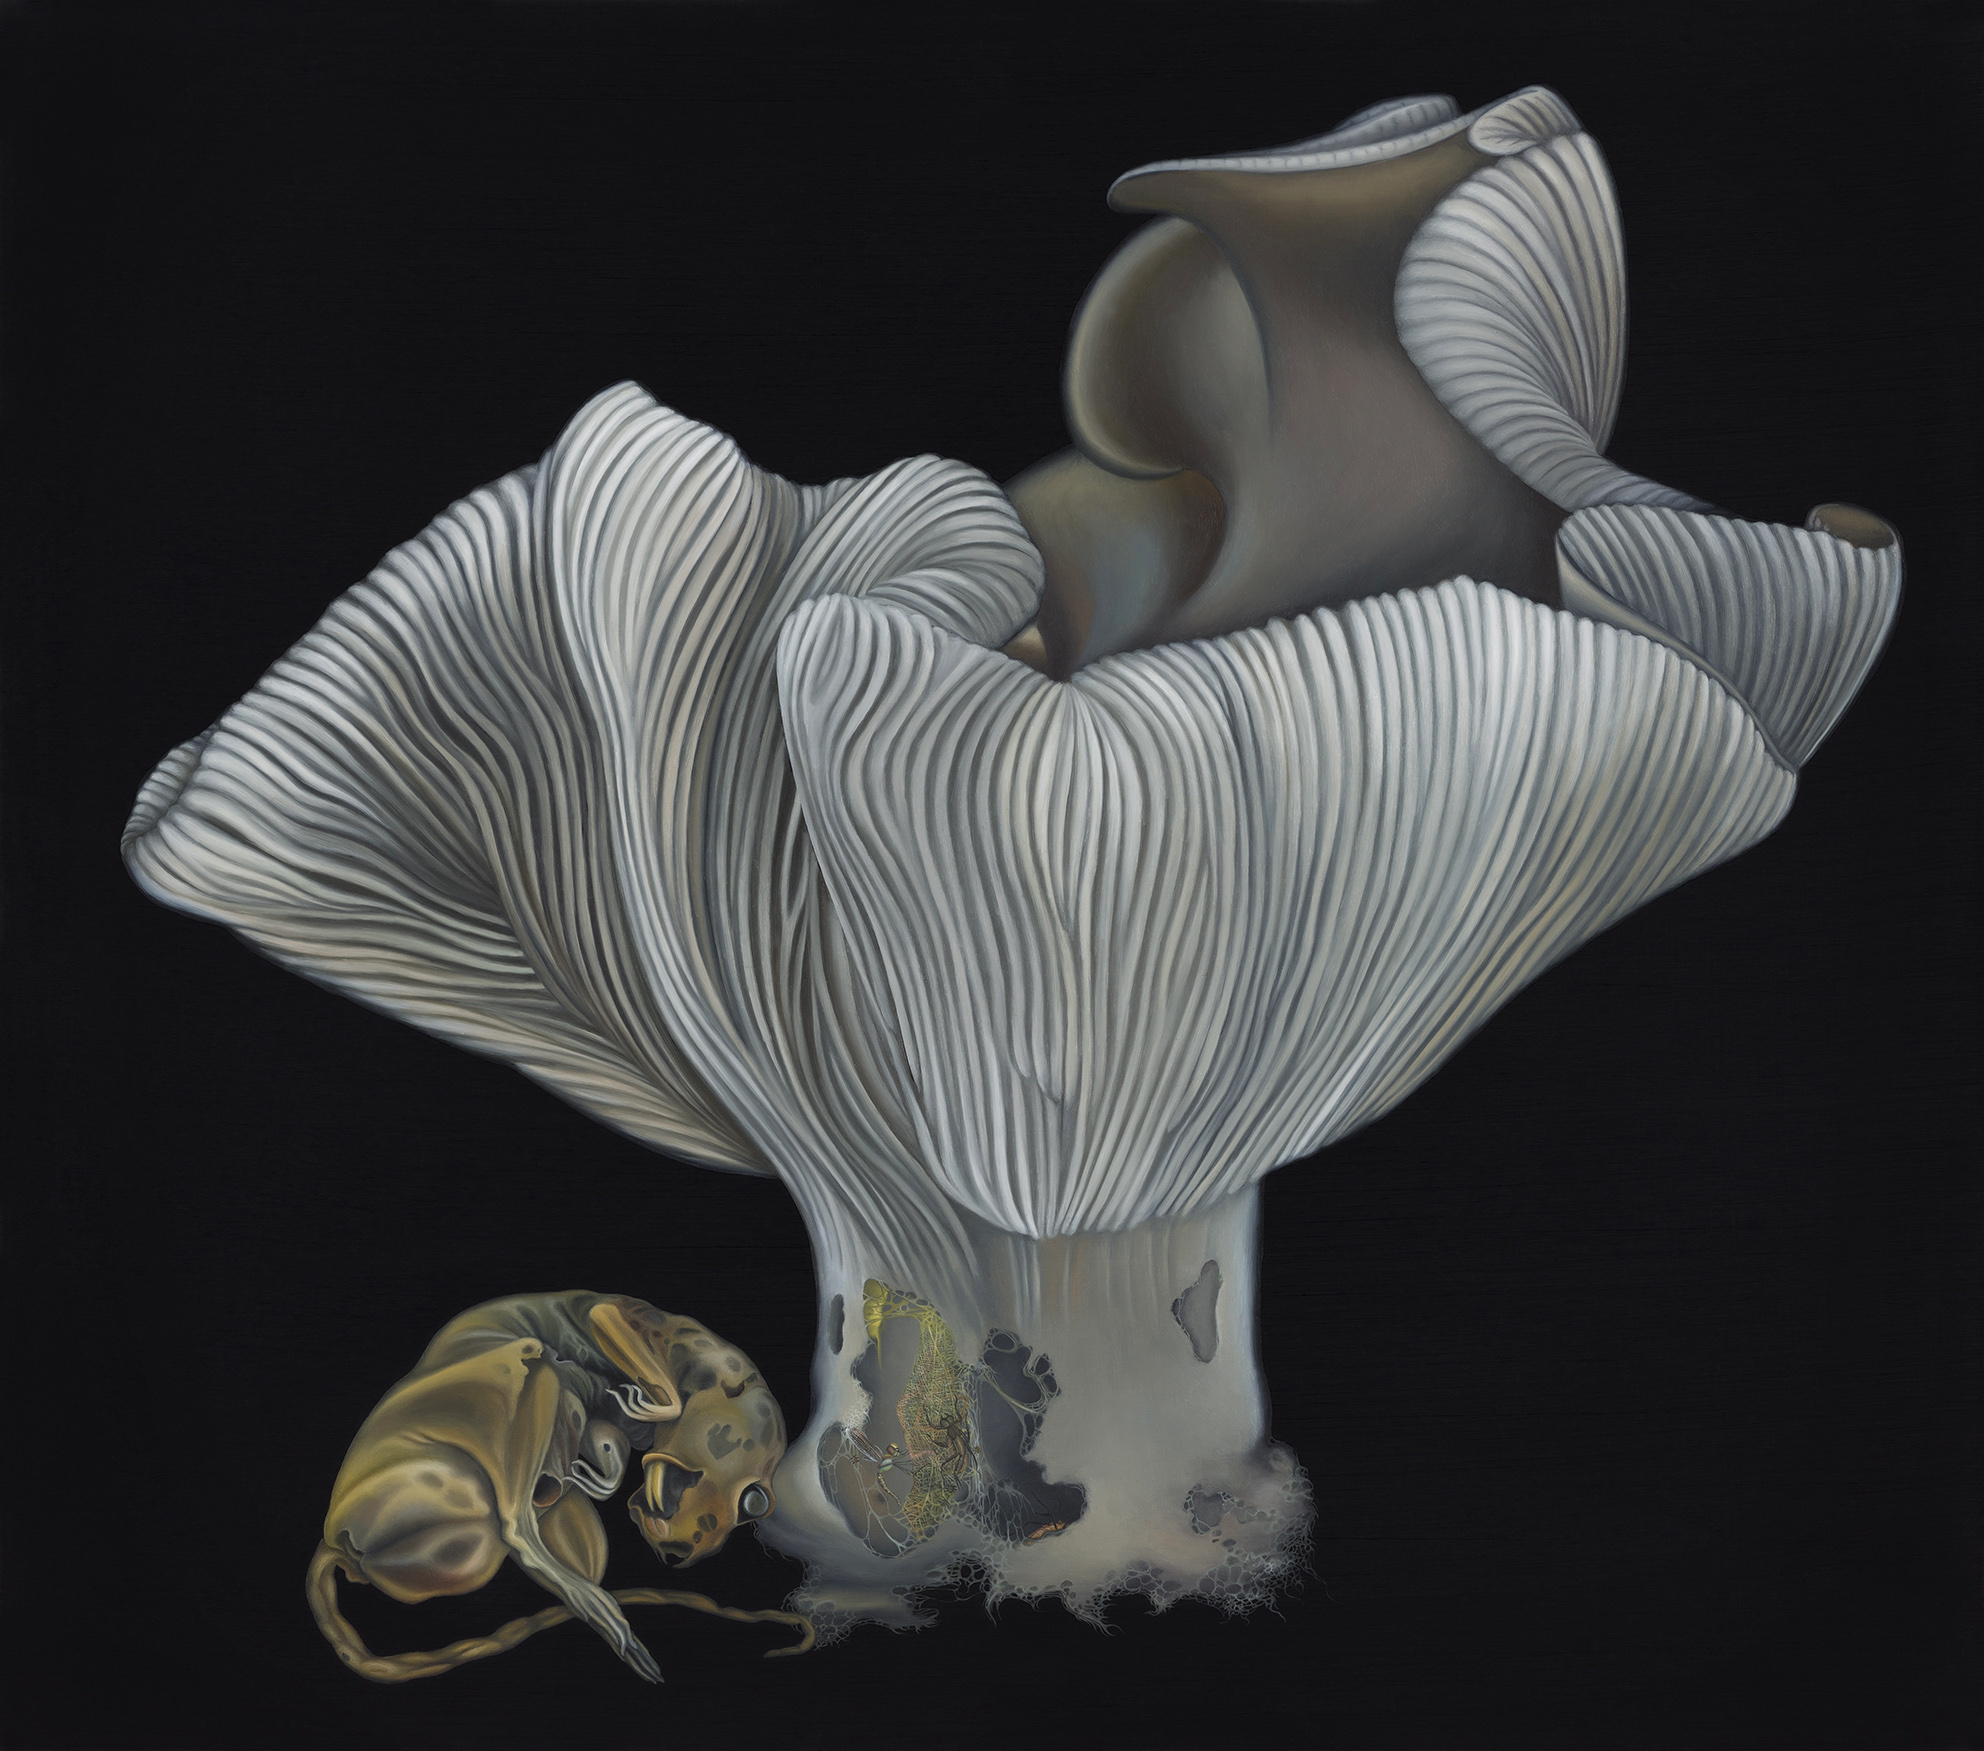 Copy of Untitled, 2013. Oil on board, 30 x 34 cm